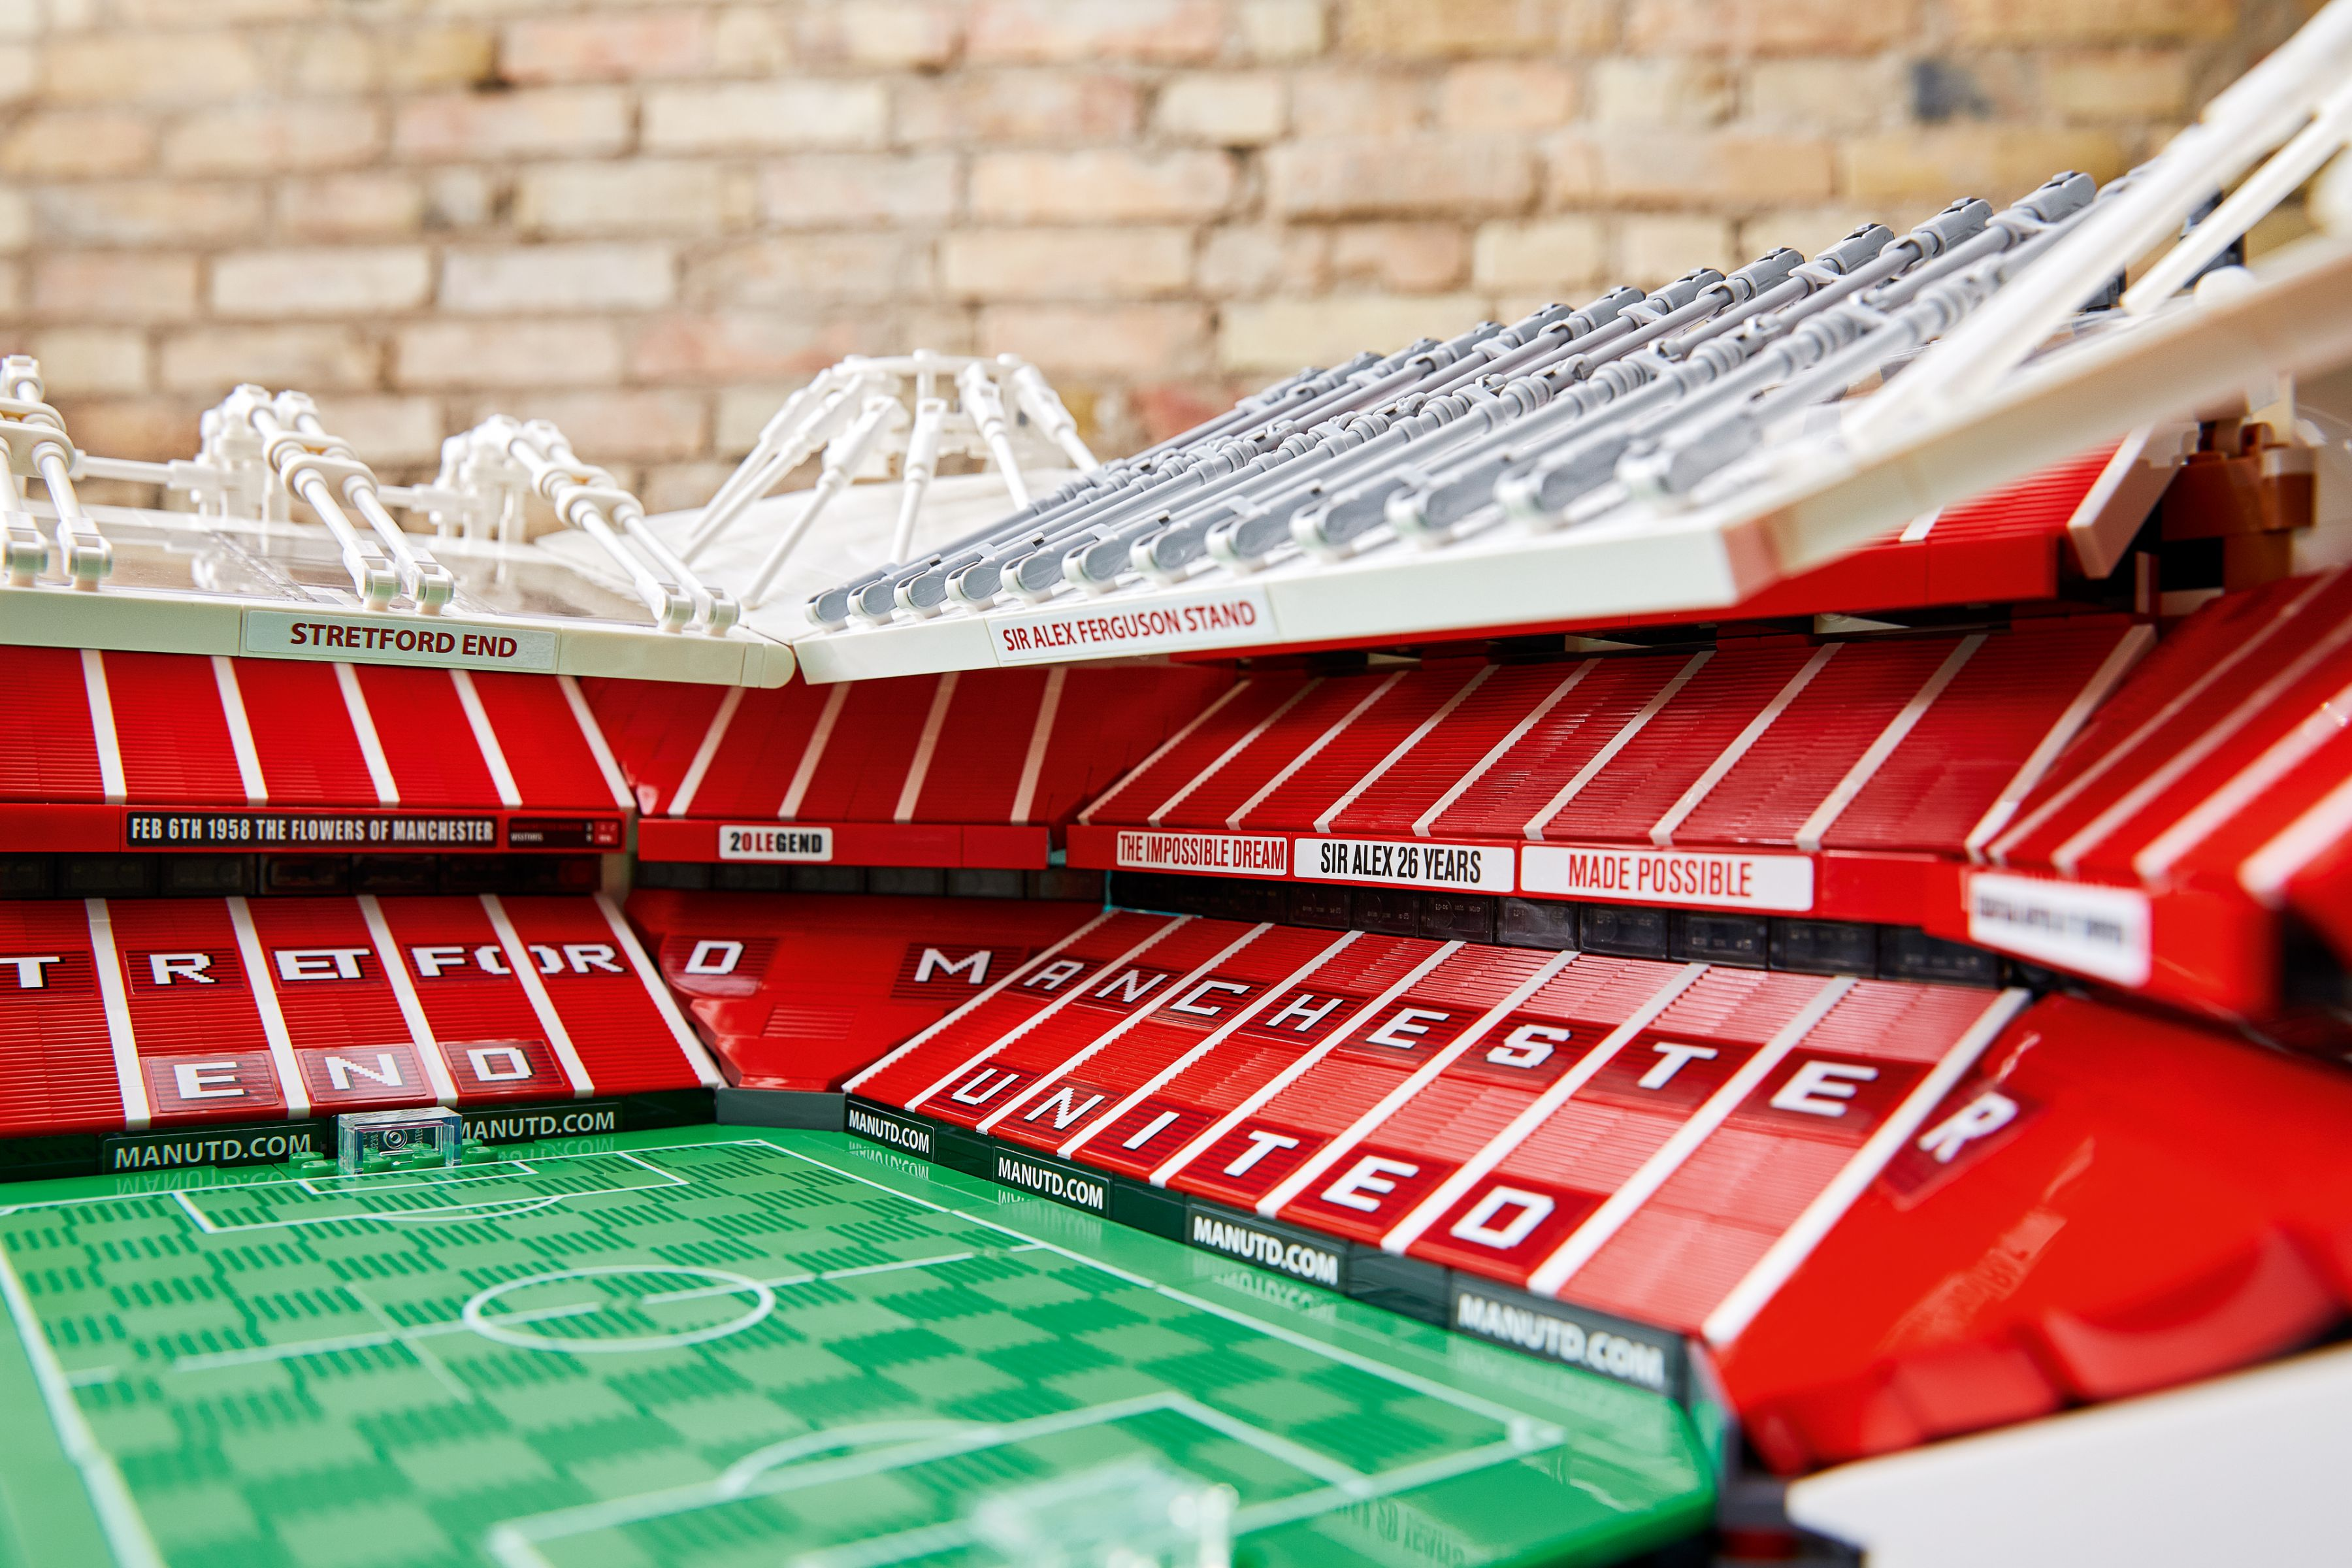 LEGO Advanced Models 10272 Old Trafford - Manchester United LEGO_10272_alt4.jpg